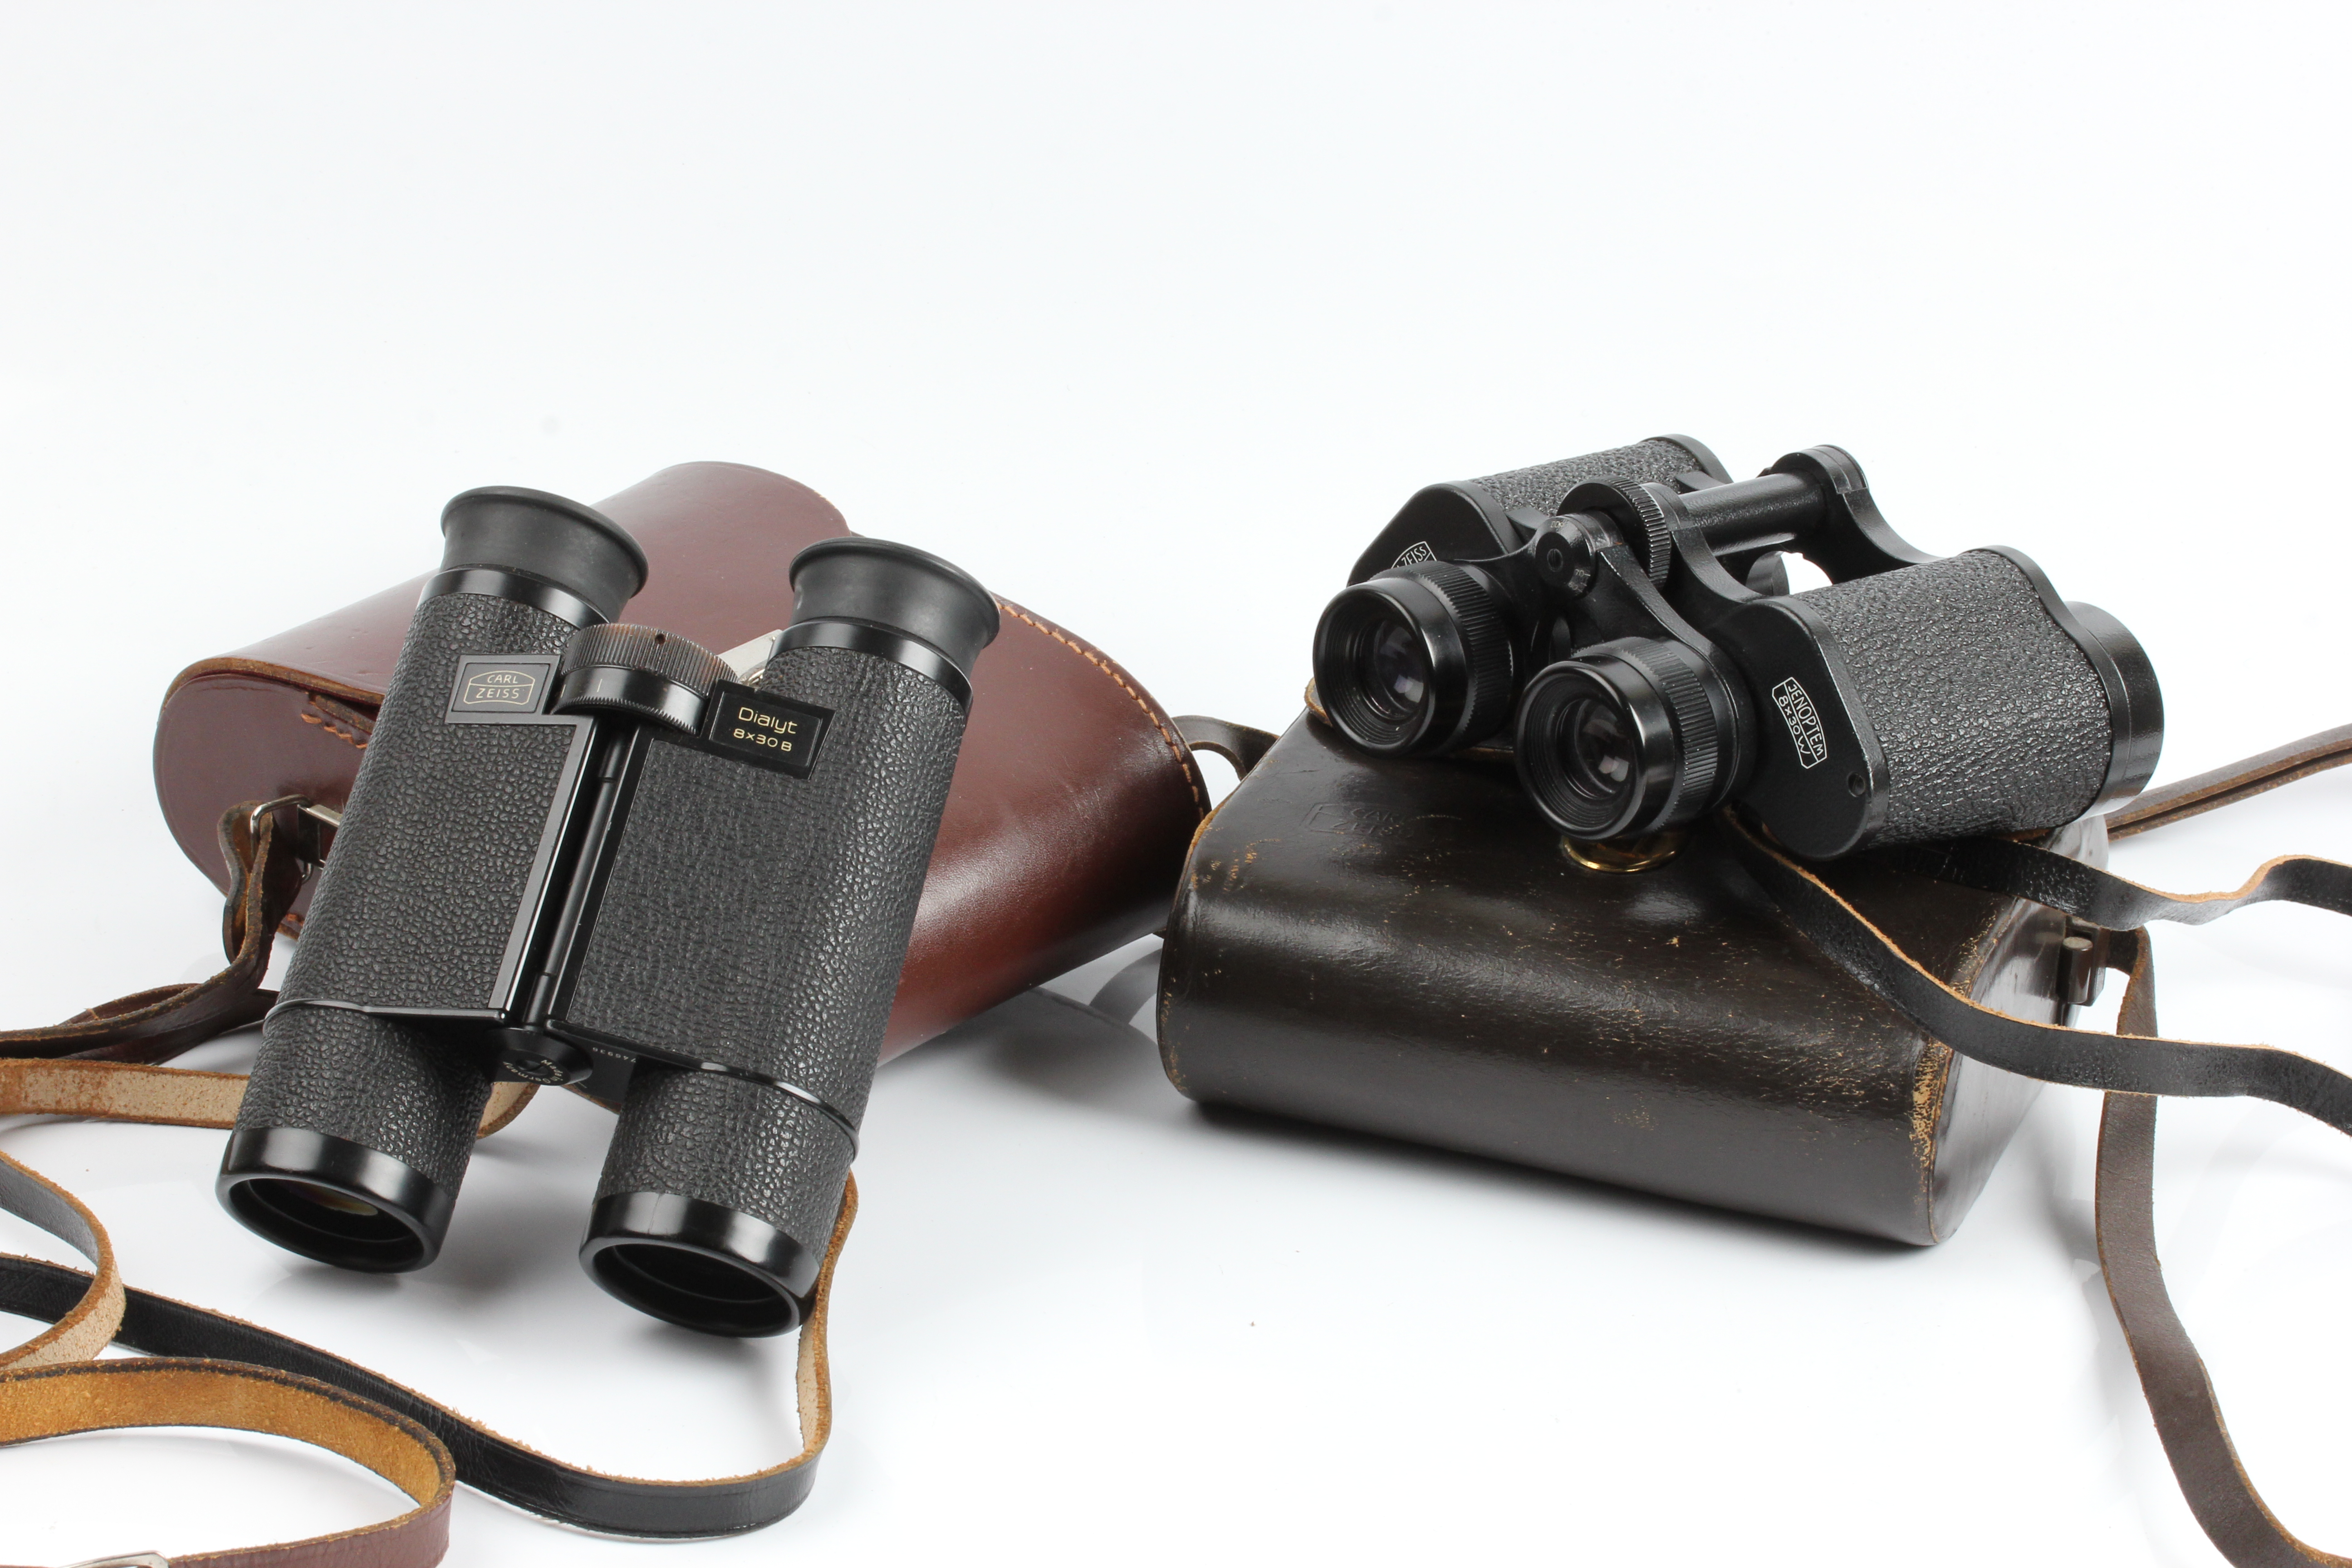 Two pairs of Carl Zeiss binoculars, Dialyt and Zenoptem, both in cases. IMPORTANT: Online viewing